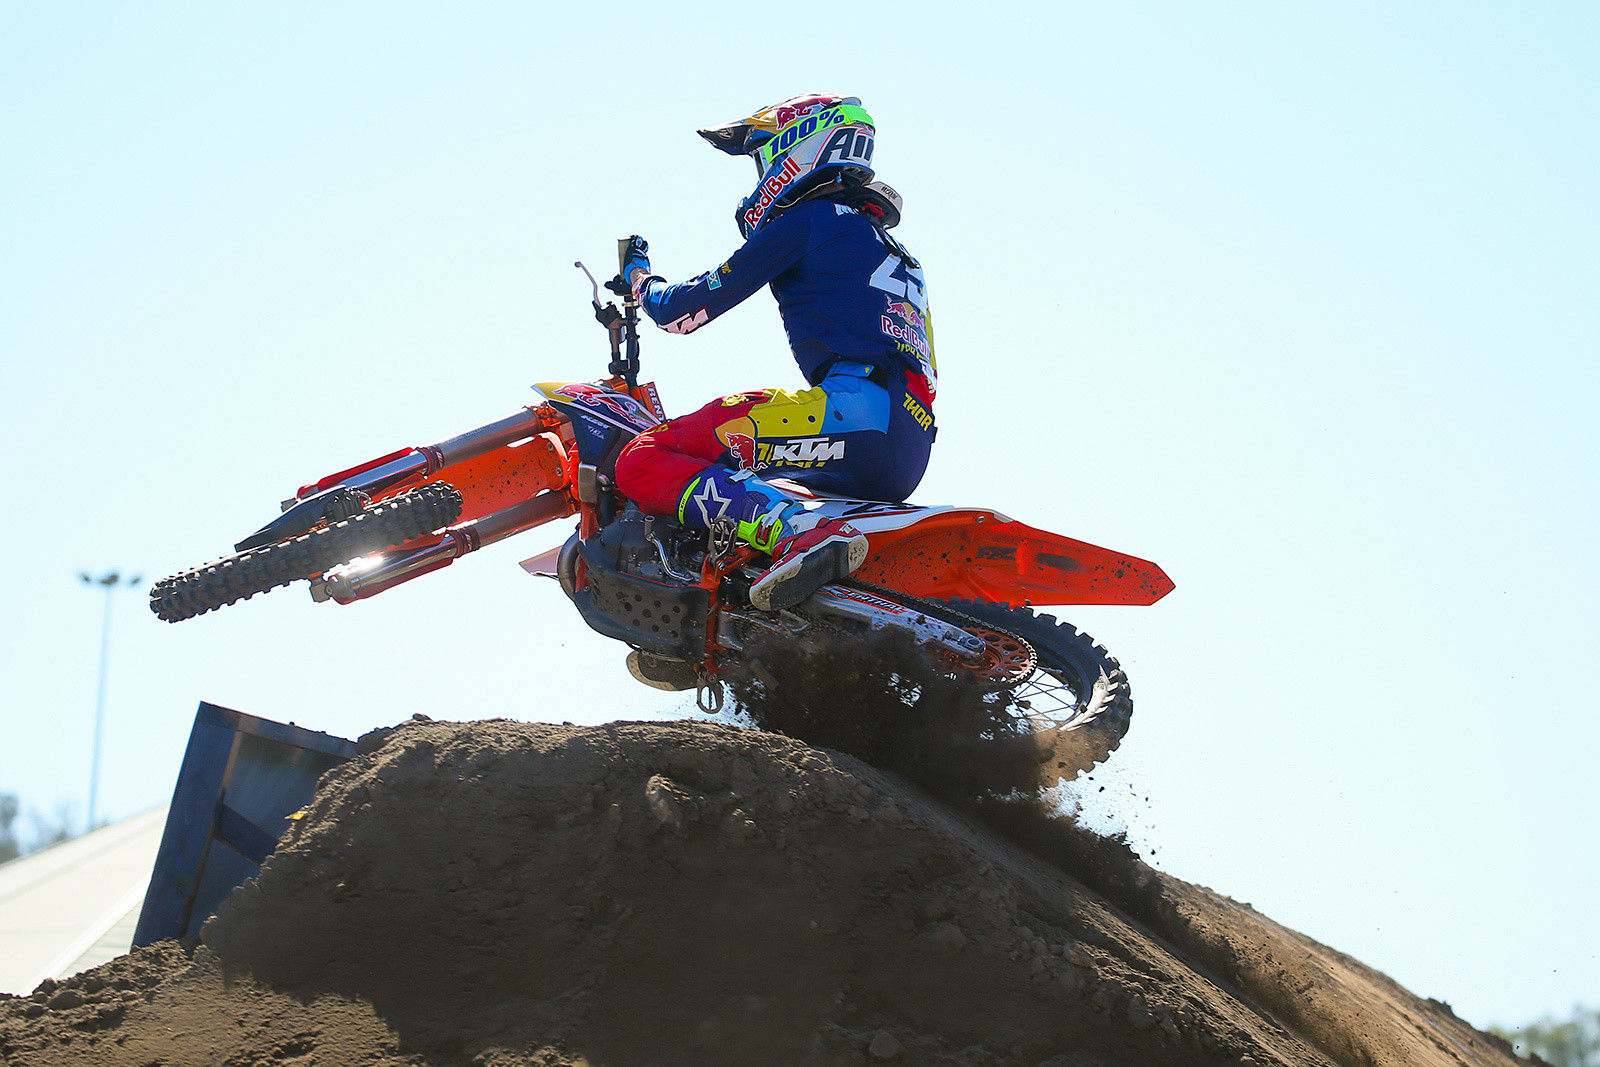 Marvin Musquin - Photo Blast: Red Bull Straight Rhythm - Motocross Pictures - Vital MX